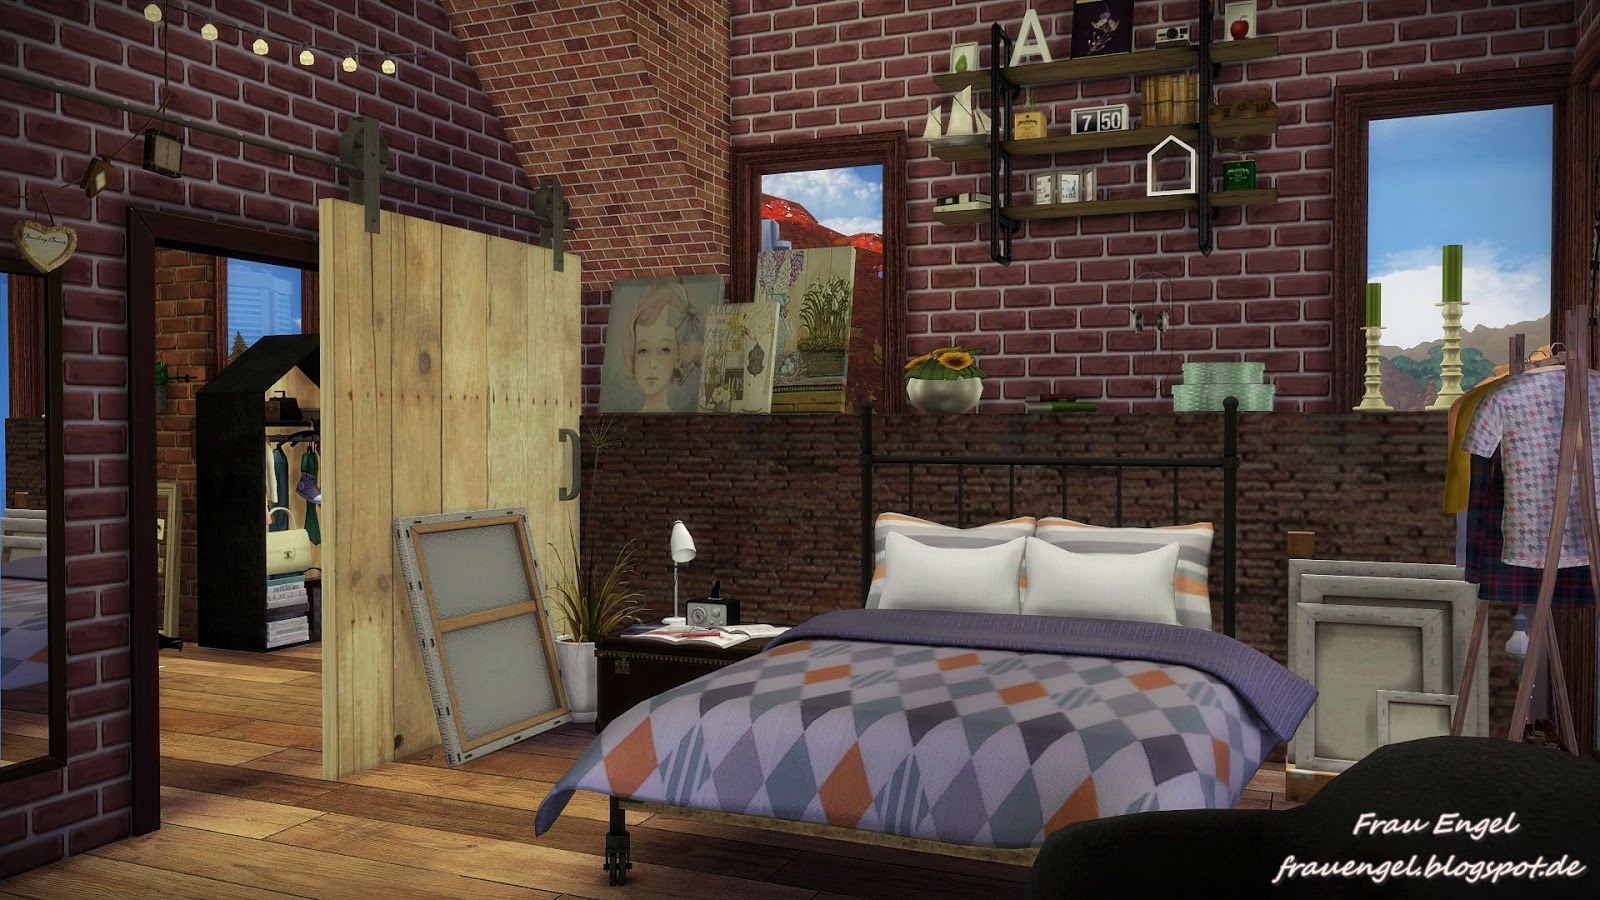 My sims 4 blog 129 autumn street by frau engel for Classic house sims 4